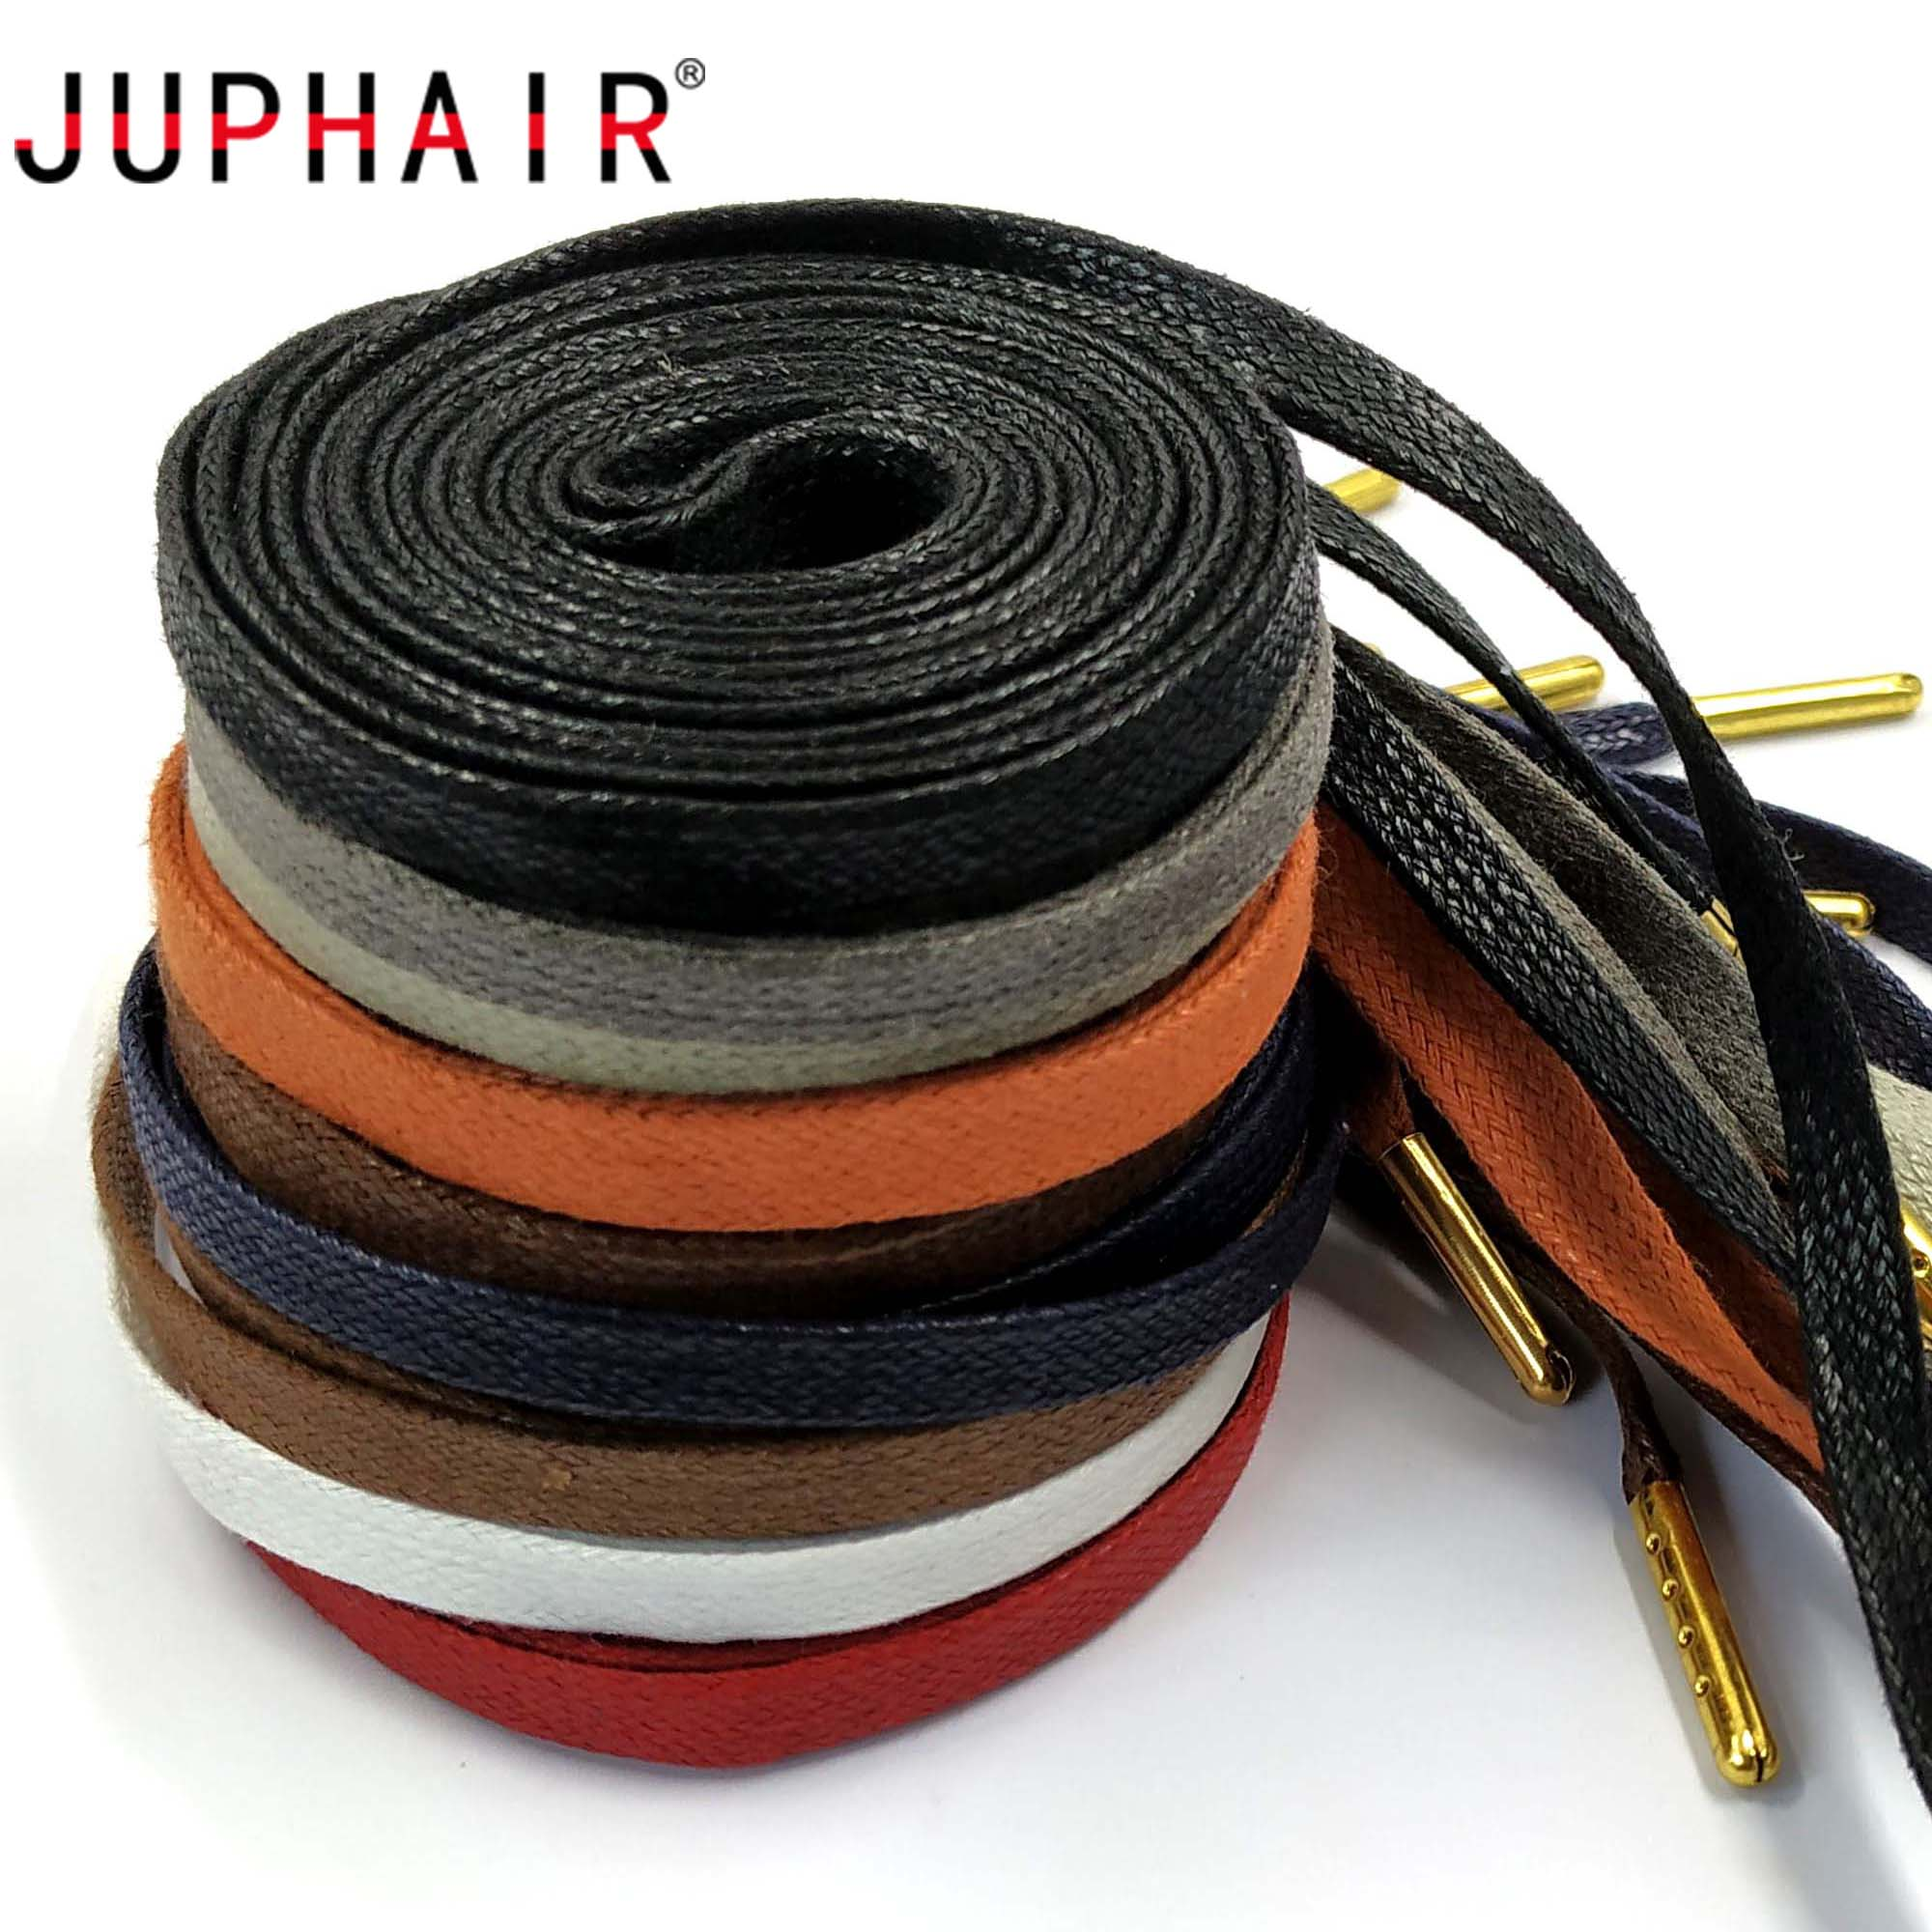 JUPHAIR High Quality Cotton Flat Waxed Shoelaces For Unisex Leather Dress Gold Metal Tip Waxed Shoe Laces 70cm 90cm 120cm 150cm